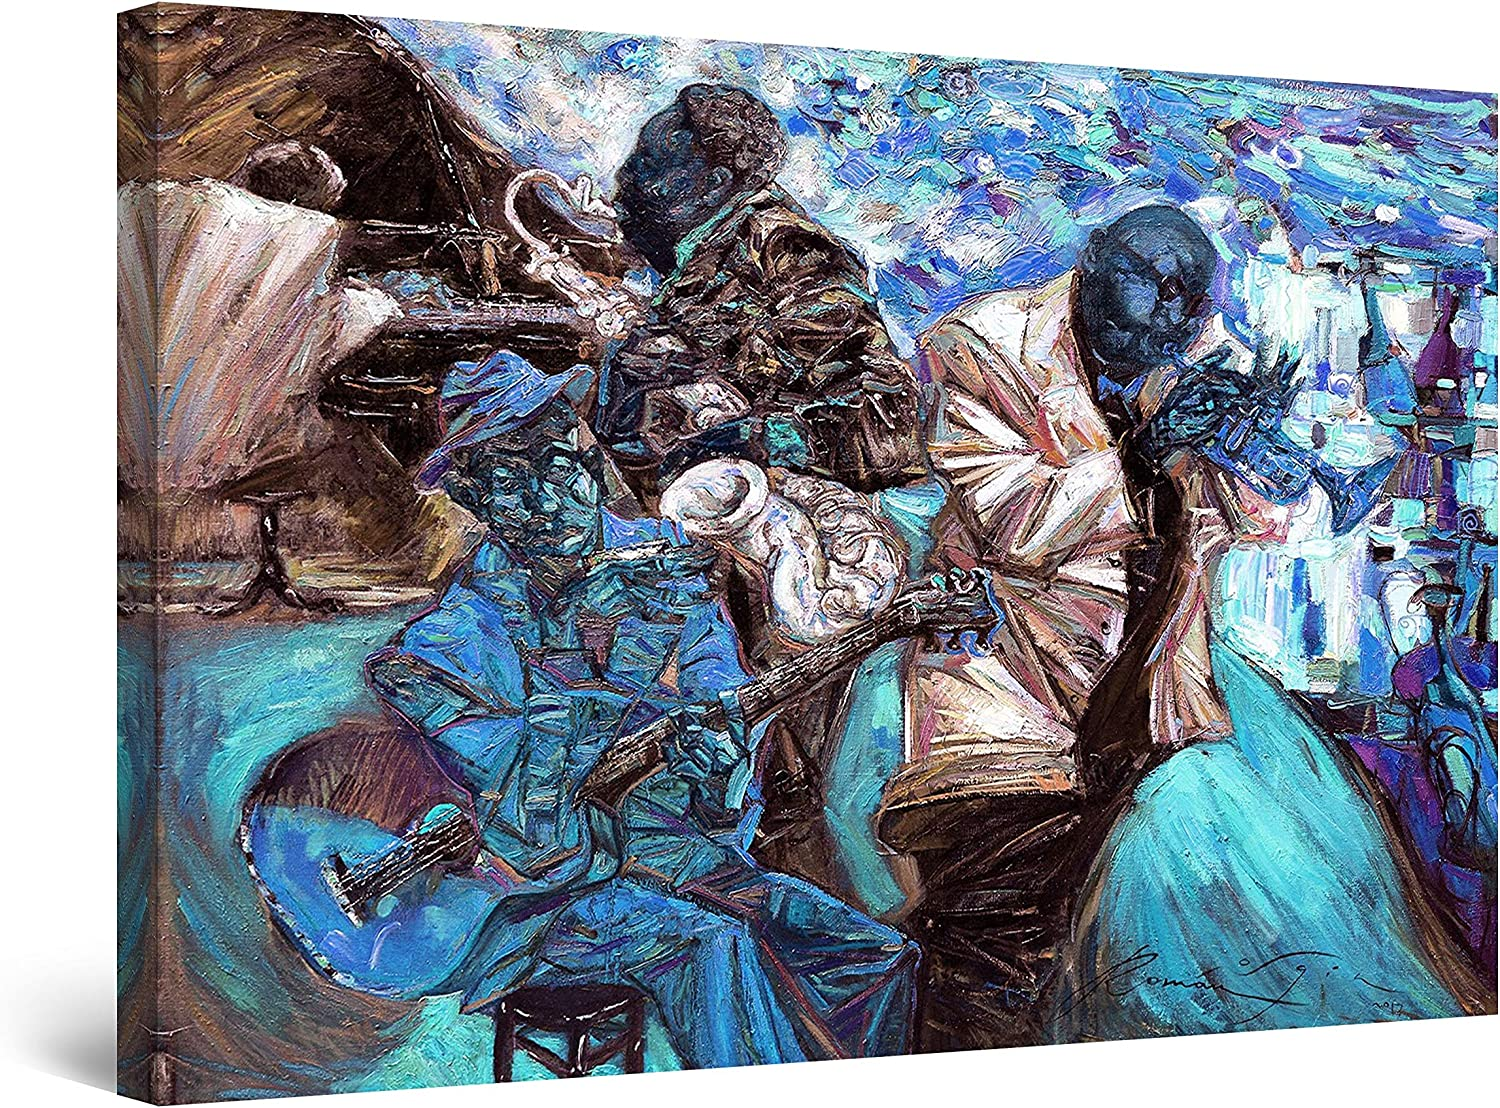 "Startonight Canvas Wall Art Abstract - Blue Jazz Orchestra Music Painting - Large Artwork Print for Living Room 32"" x 48"""